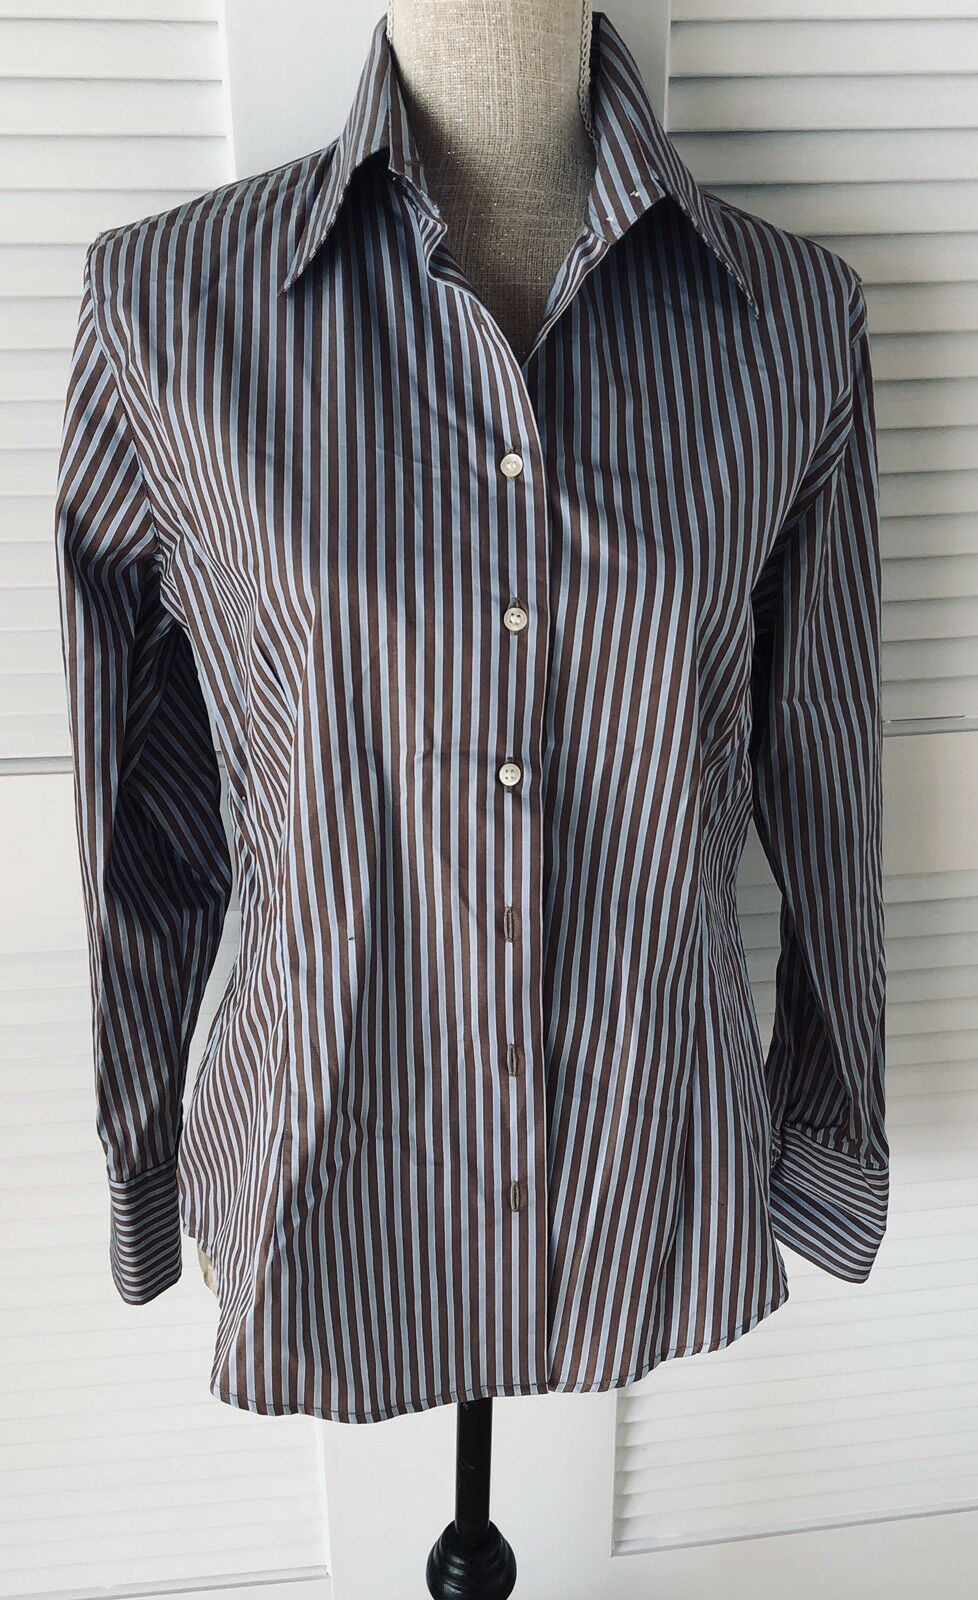 blueE AND BROWN STRIPE LADIES MANTAILORED ITALIAN FINEST COTTON BLOUSE